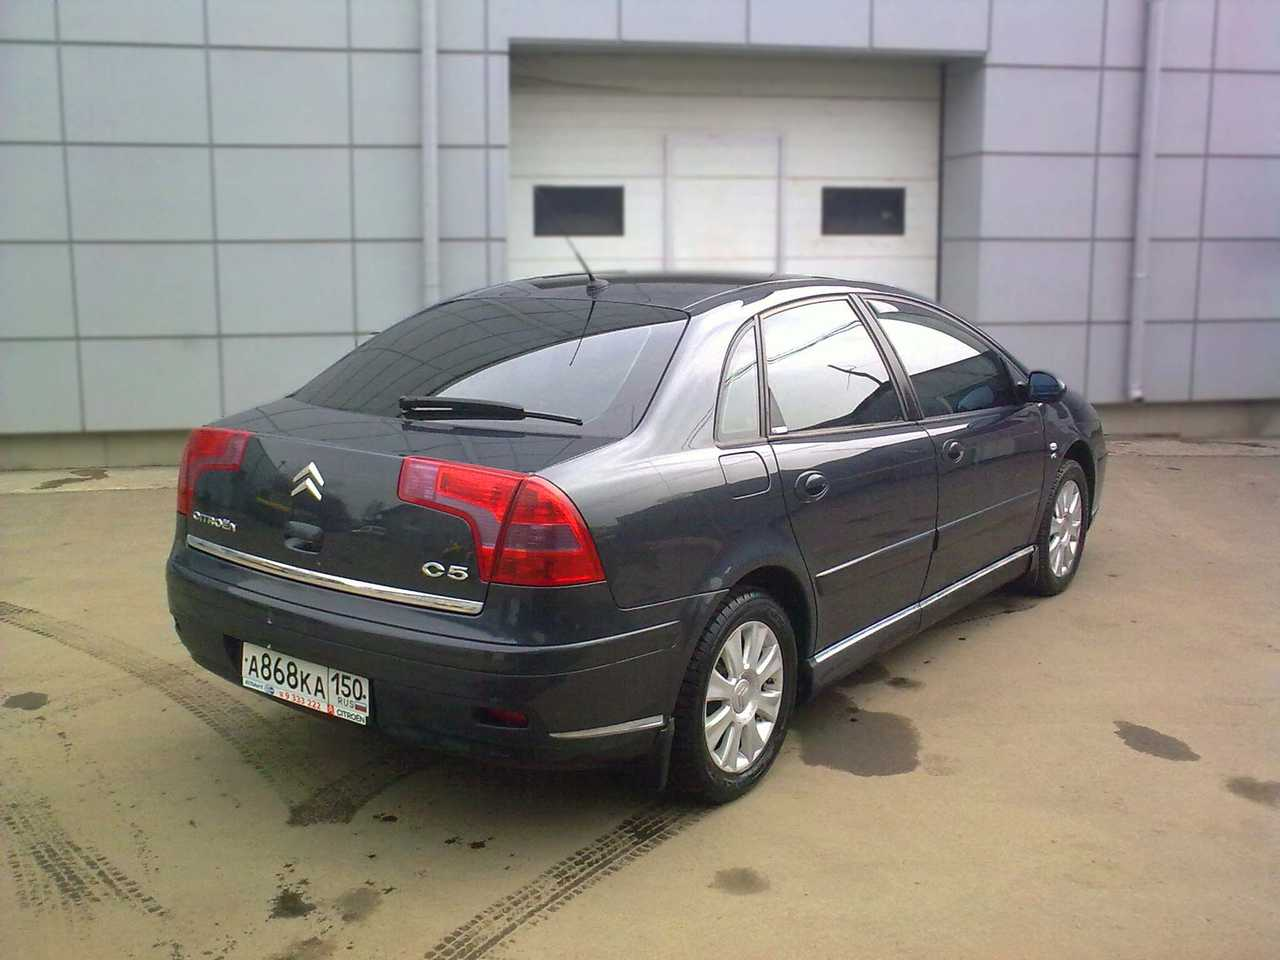 used 2005 citroen c5 photos 3000cc gasoline ff automatic for sale. Black Bedroom Furniture Sets. Home Design Ideas